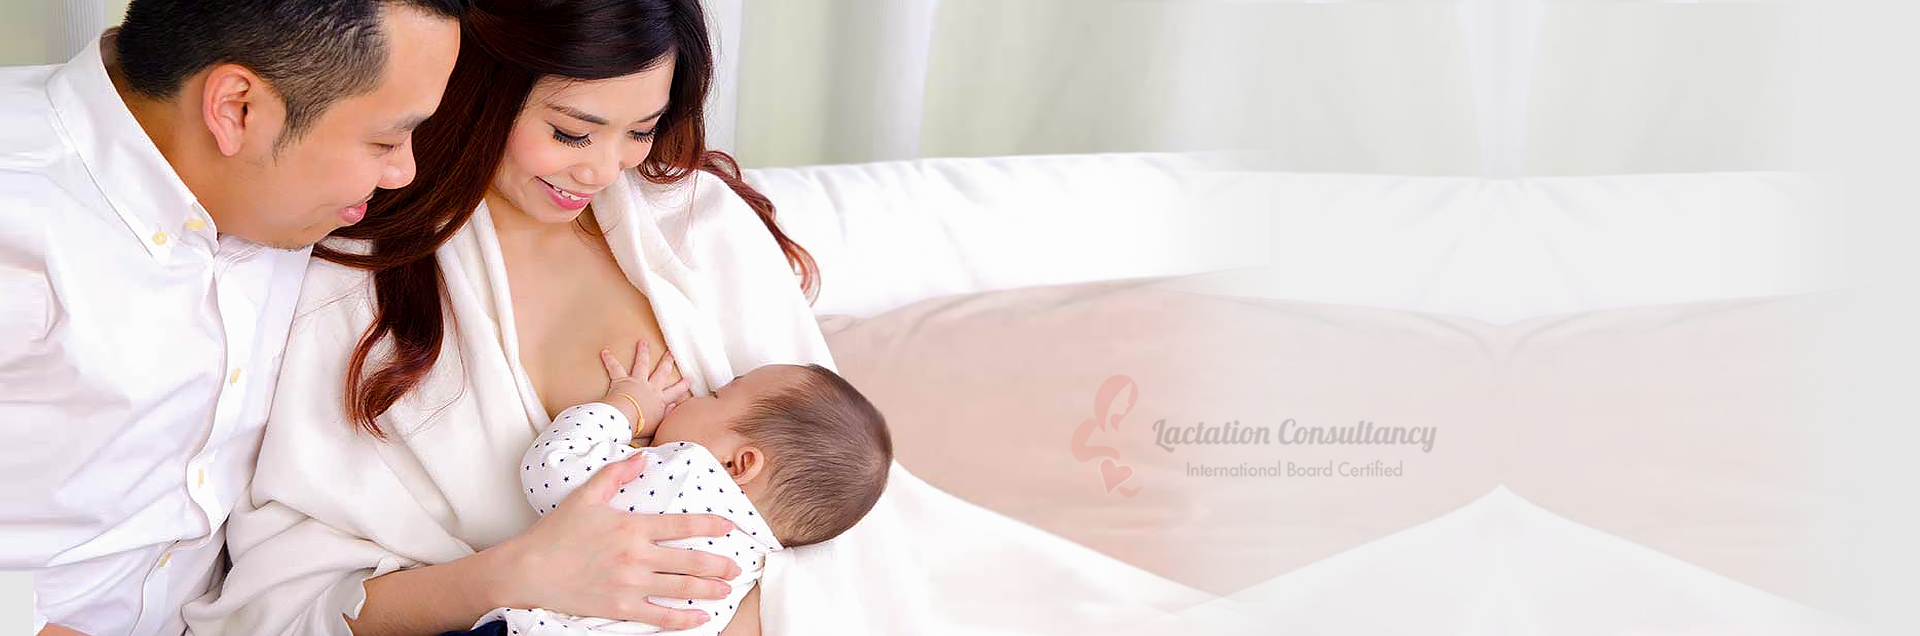 Welcome to lactation consultancy lactation consultant international board certified 1betcityfo Choice Image